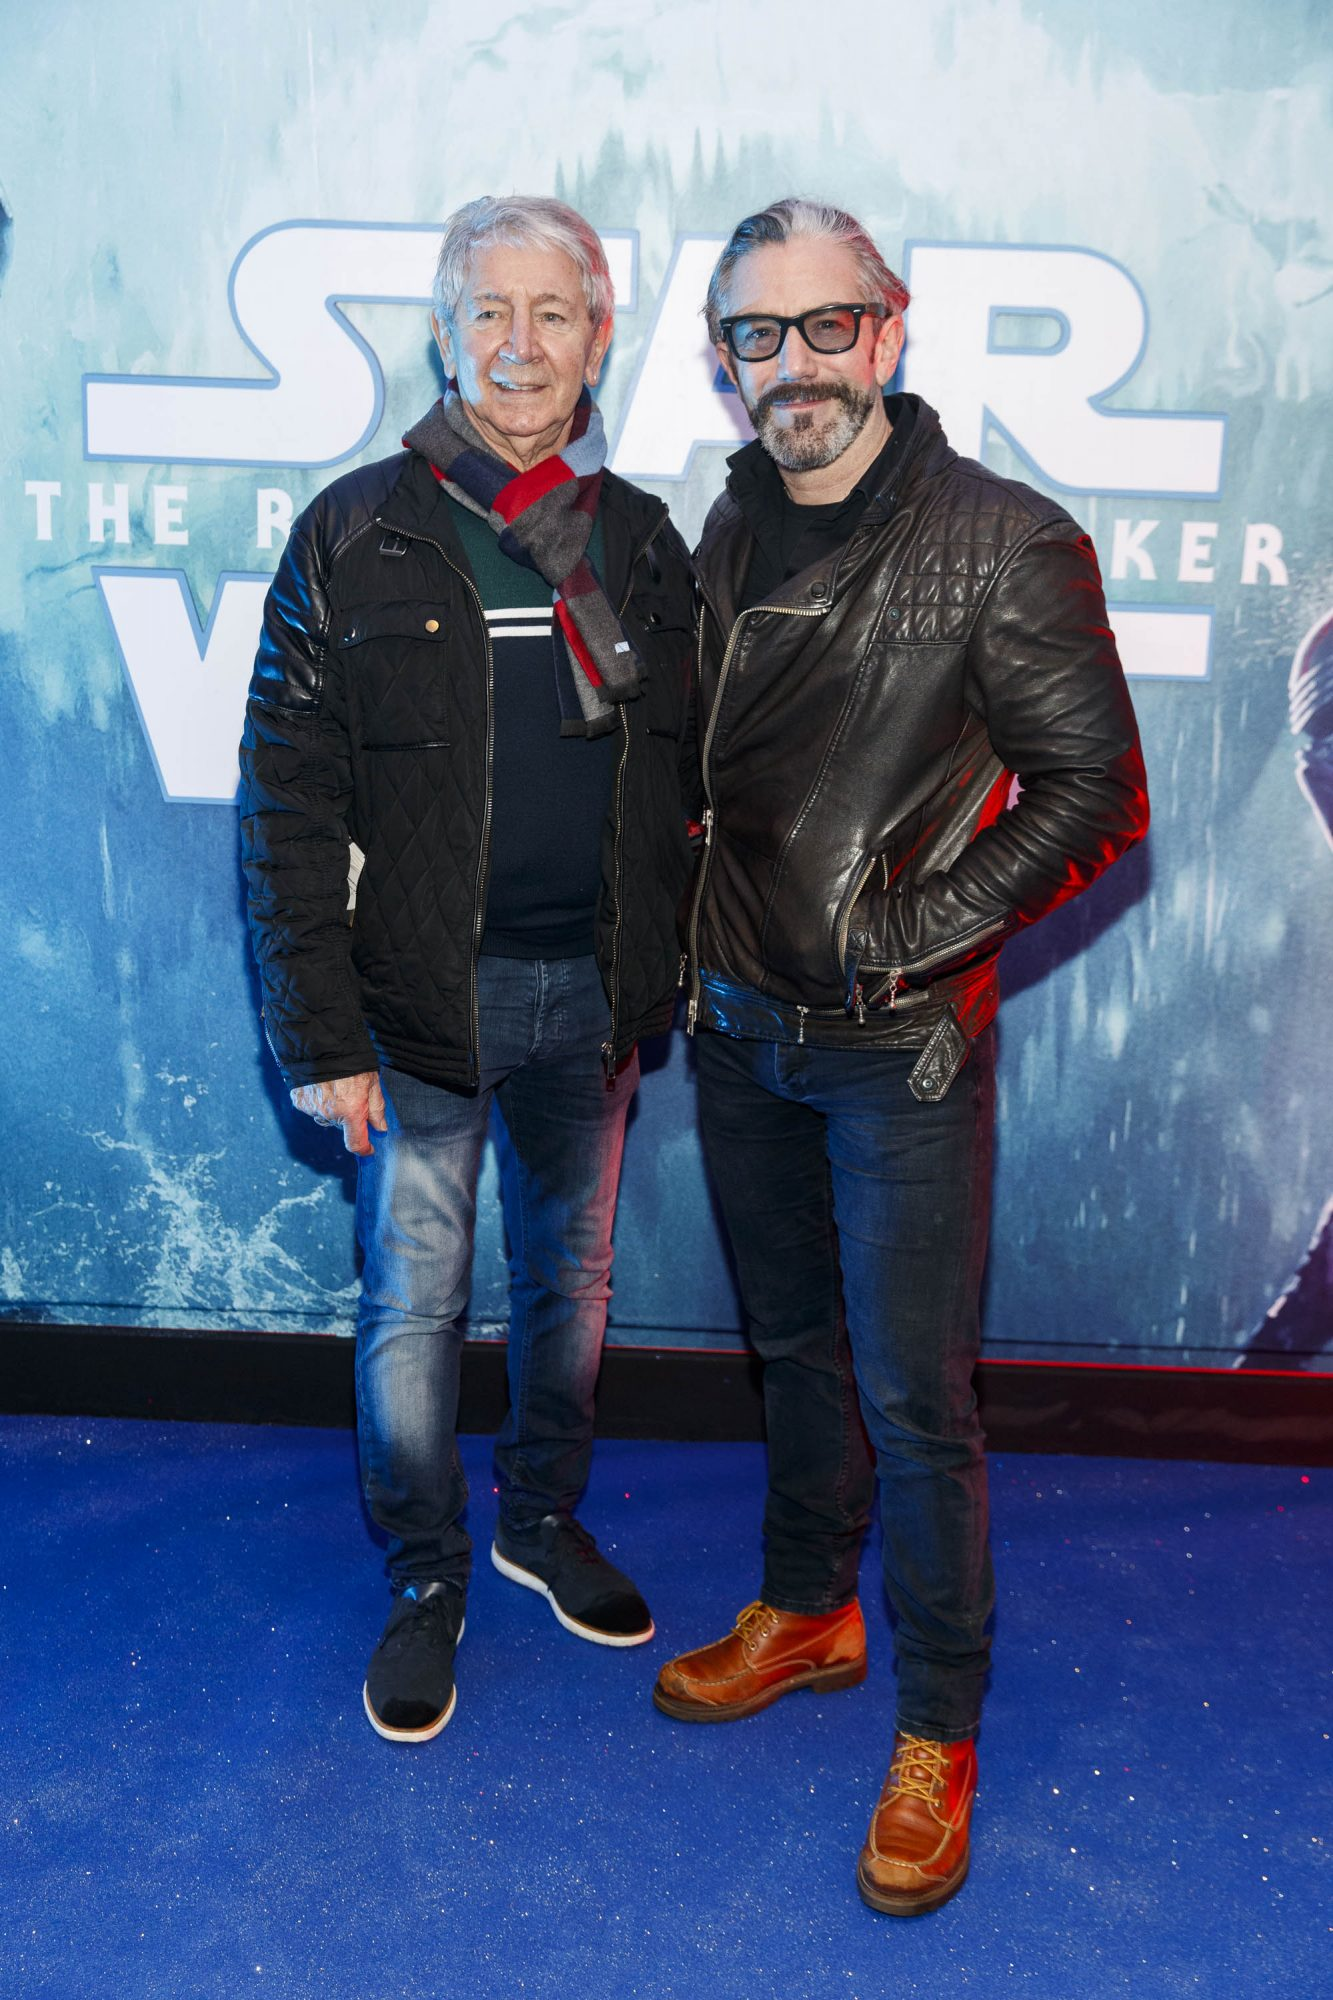 Gary Kabanagh and Mark O'Keefe pictured at the Irish premiere screening of Star Wars: The Rise of Skywalker at Cineworld, Dublin. Picture: Andres Poveda